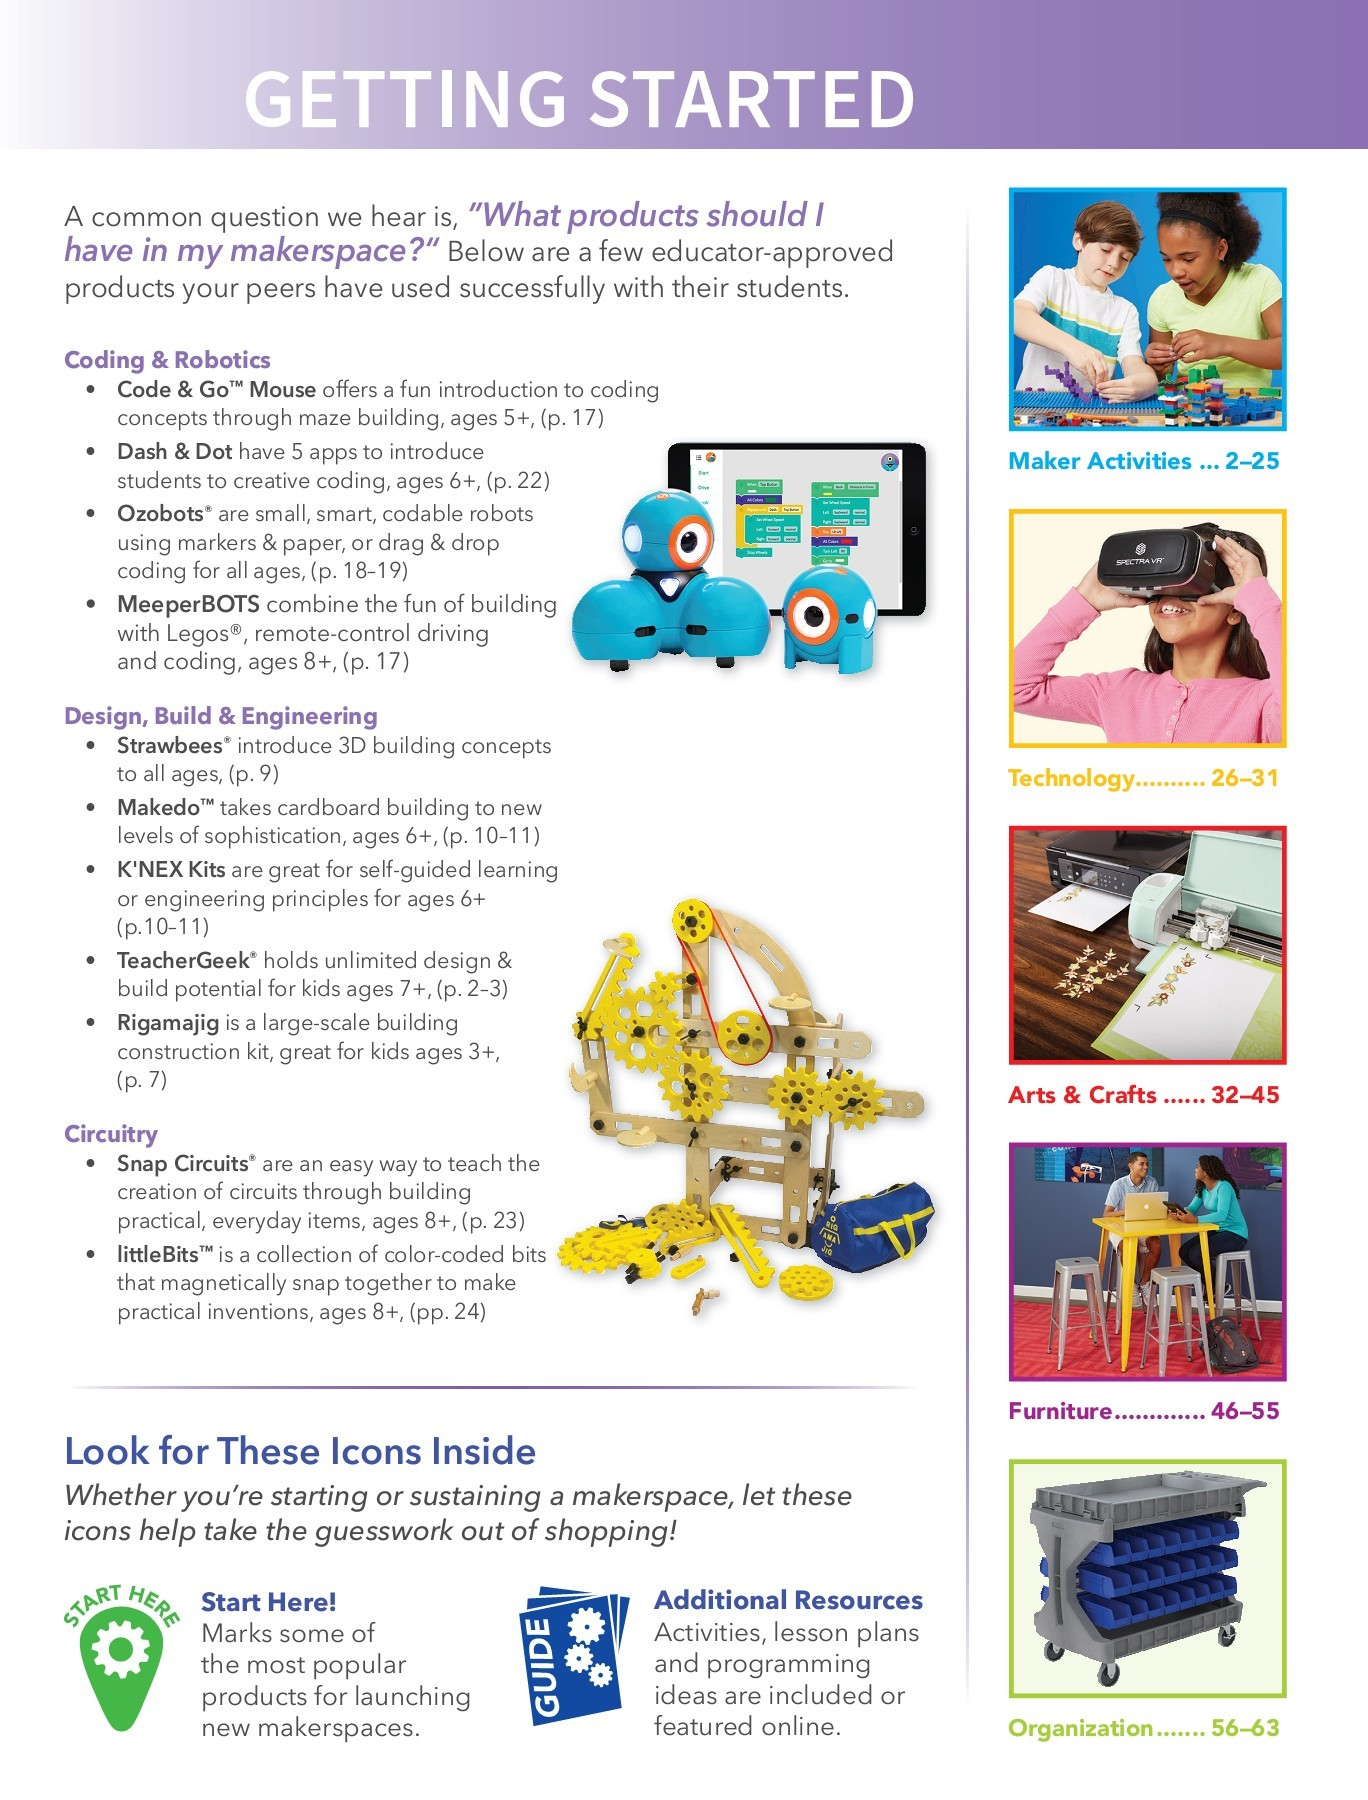 2018 Makerspace Catalog Pubhtml5 With Fun Activities Make A Simple Circuit Common Household Items